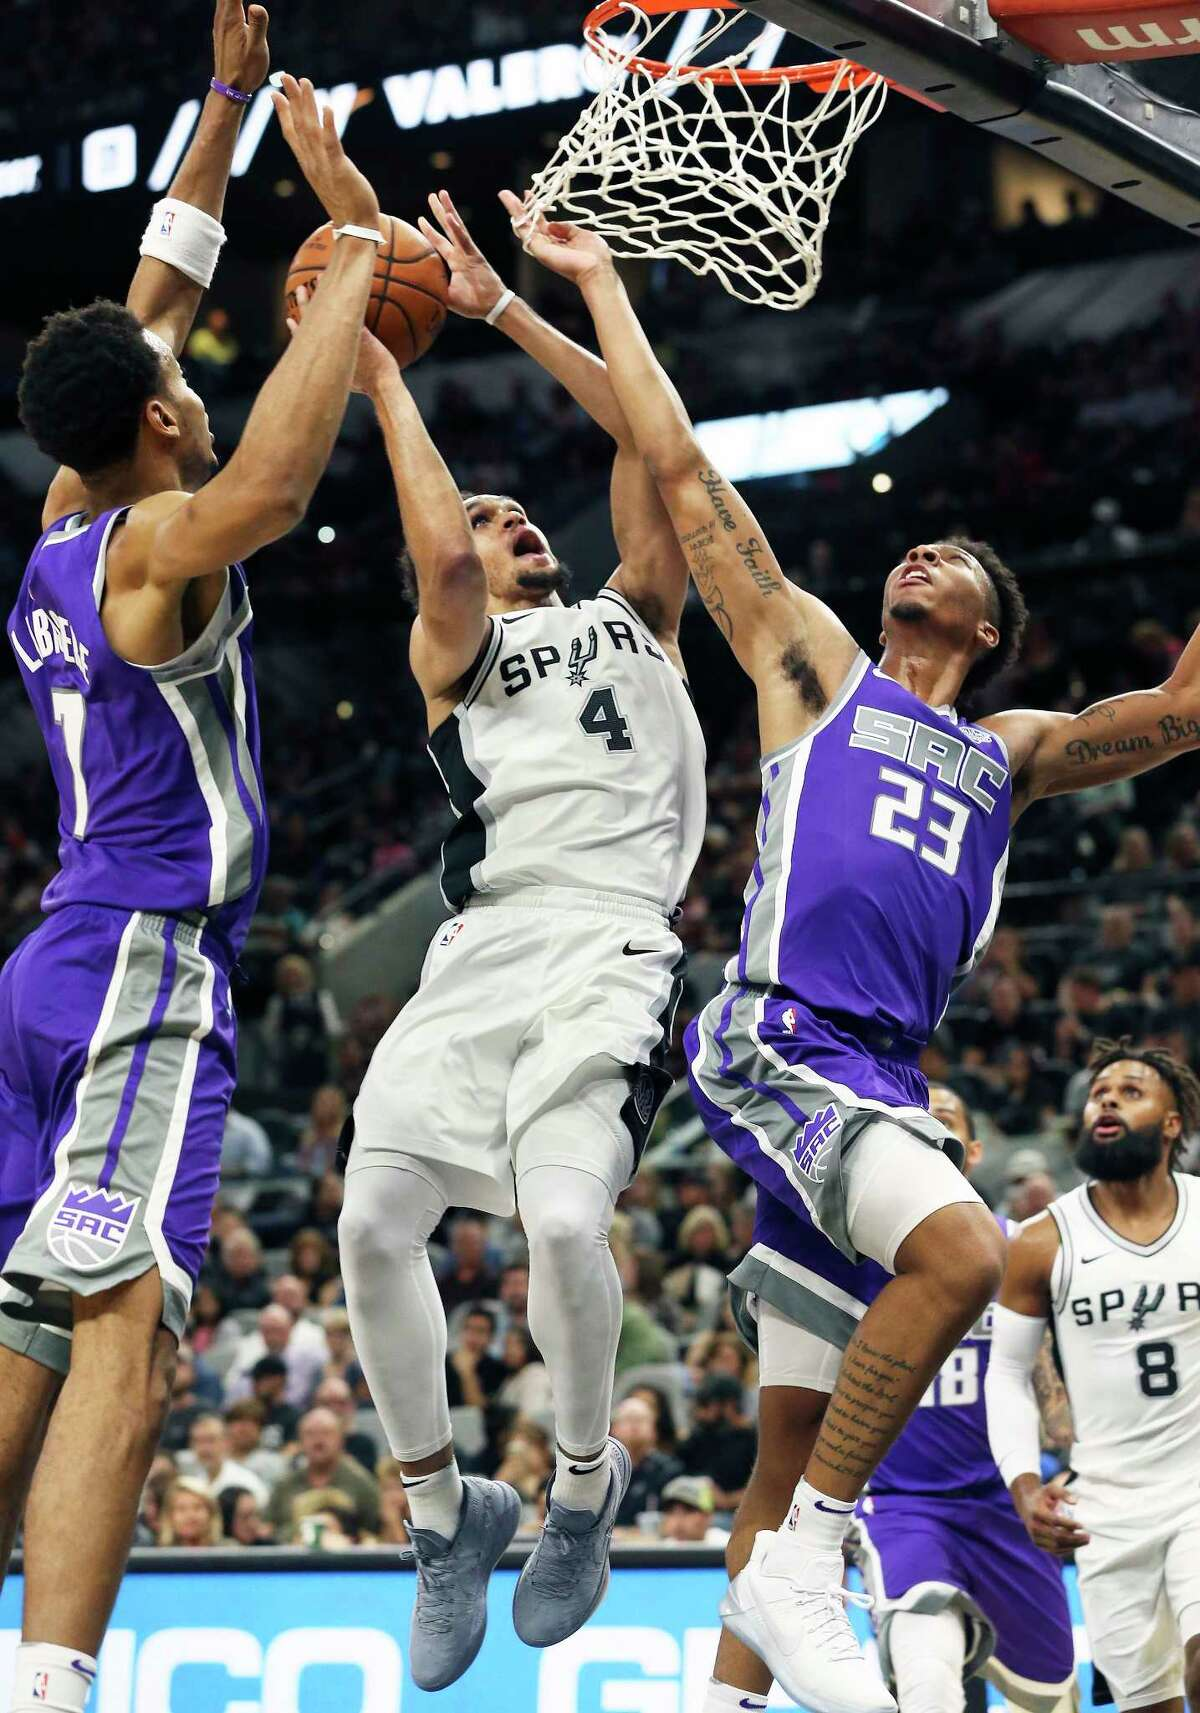 Derrick White gets to the basket through the defense of Skal Labissiere and Malachi Richardson (23) as the Spurs play the Kings at the AT&T Center on October 6, 2017.